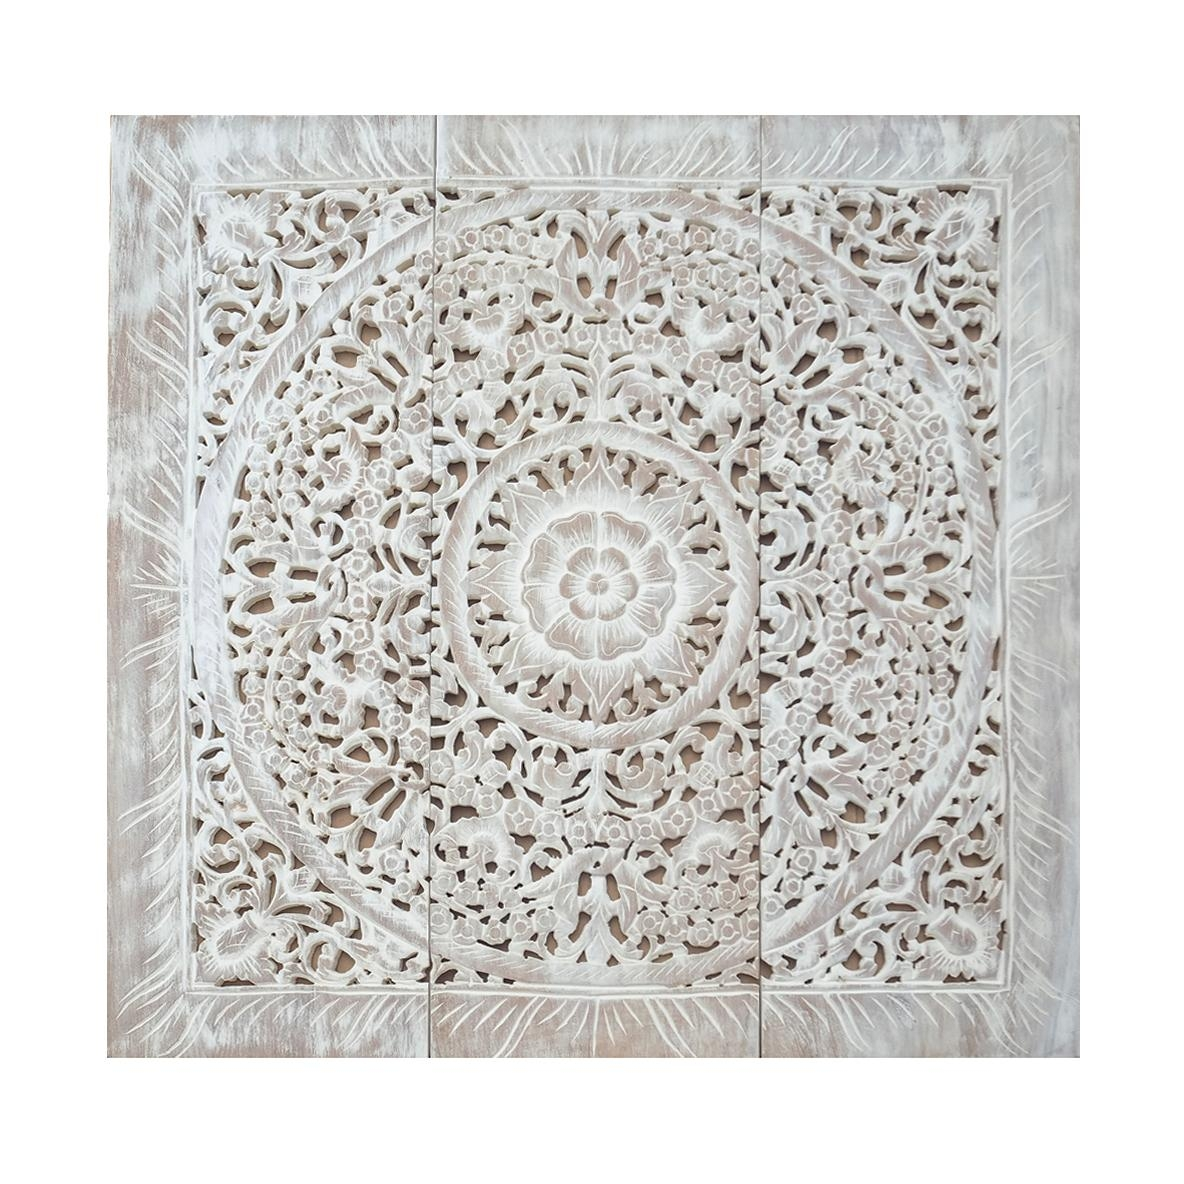 Balinese Antique Wood Carving Wall Art Panel – Siam Sawadee Pertaining To White Wooden Wall Art (Image 4 of 20)